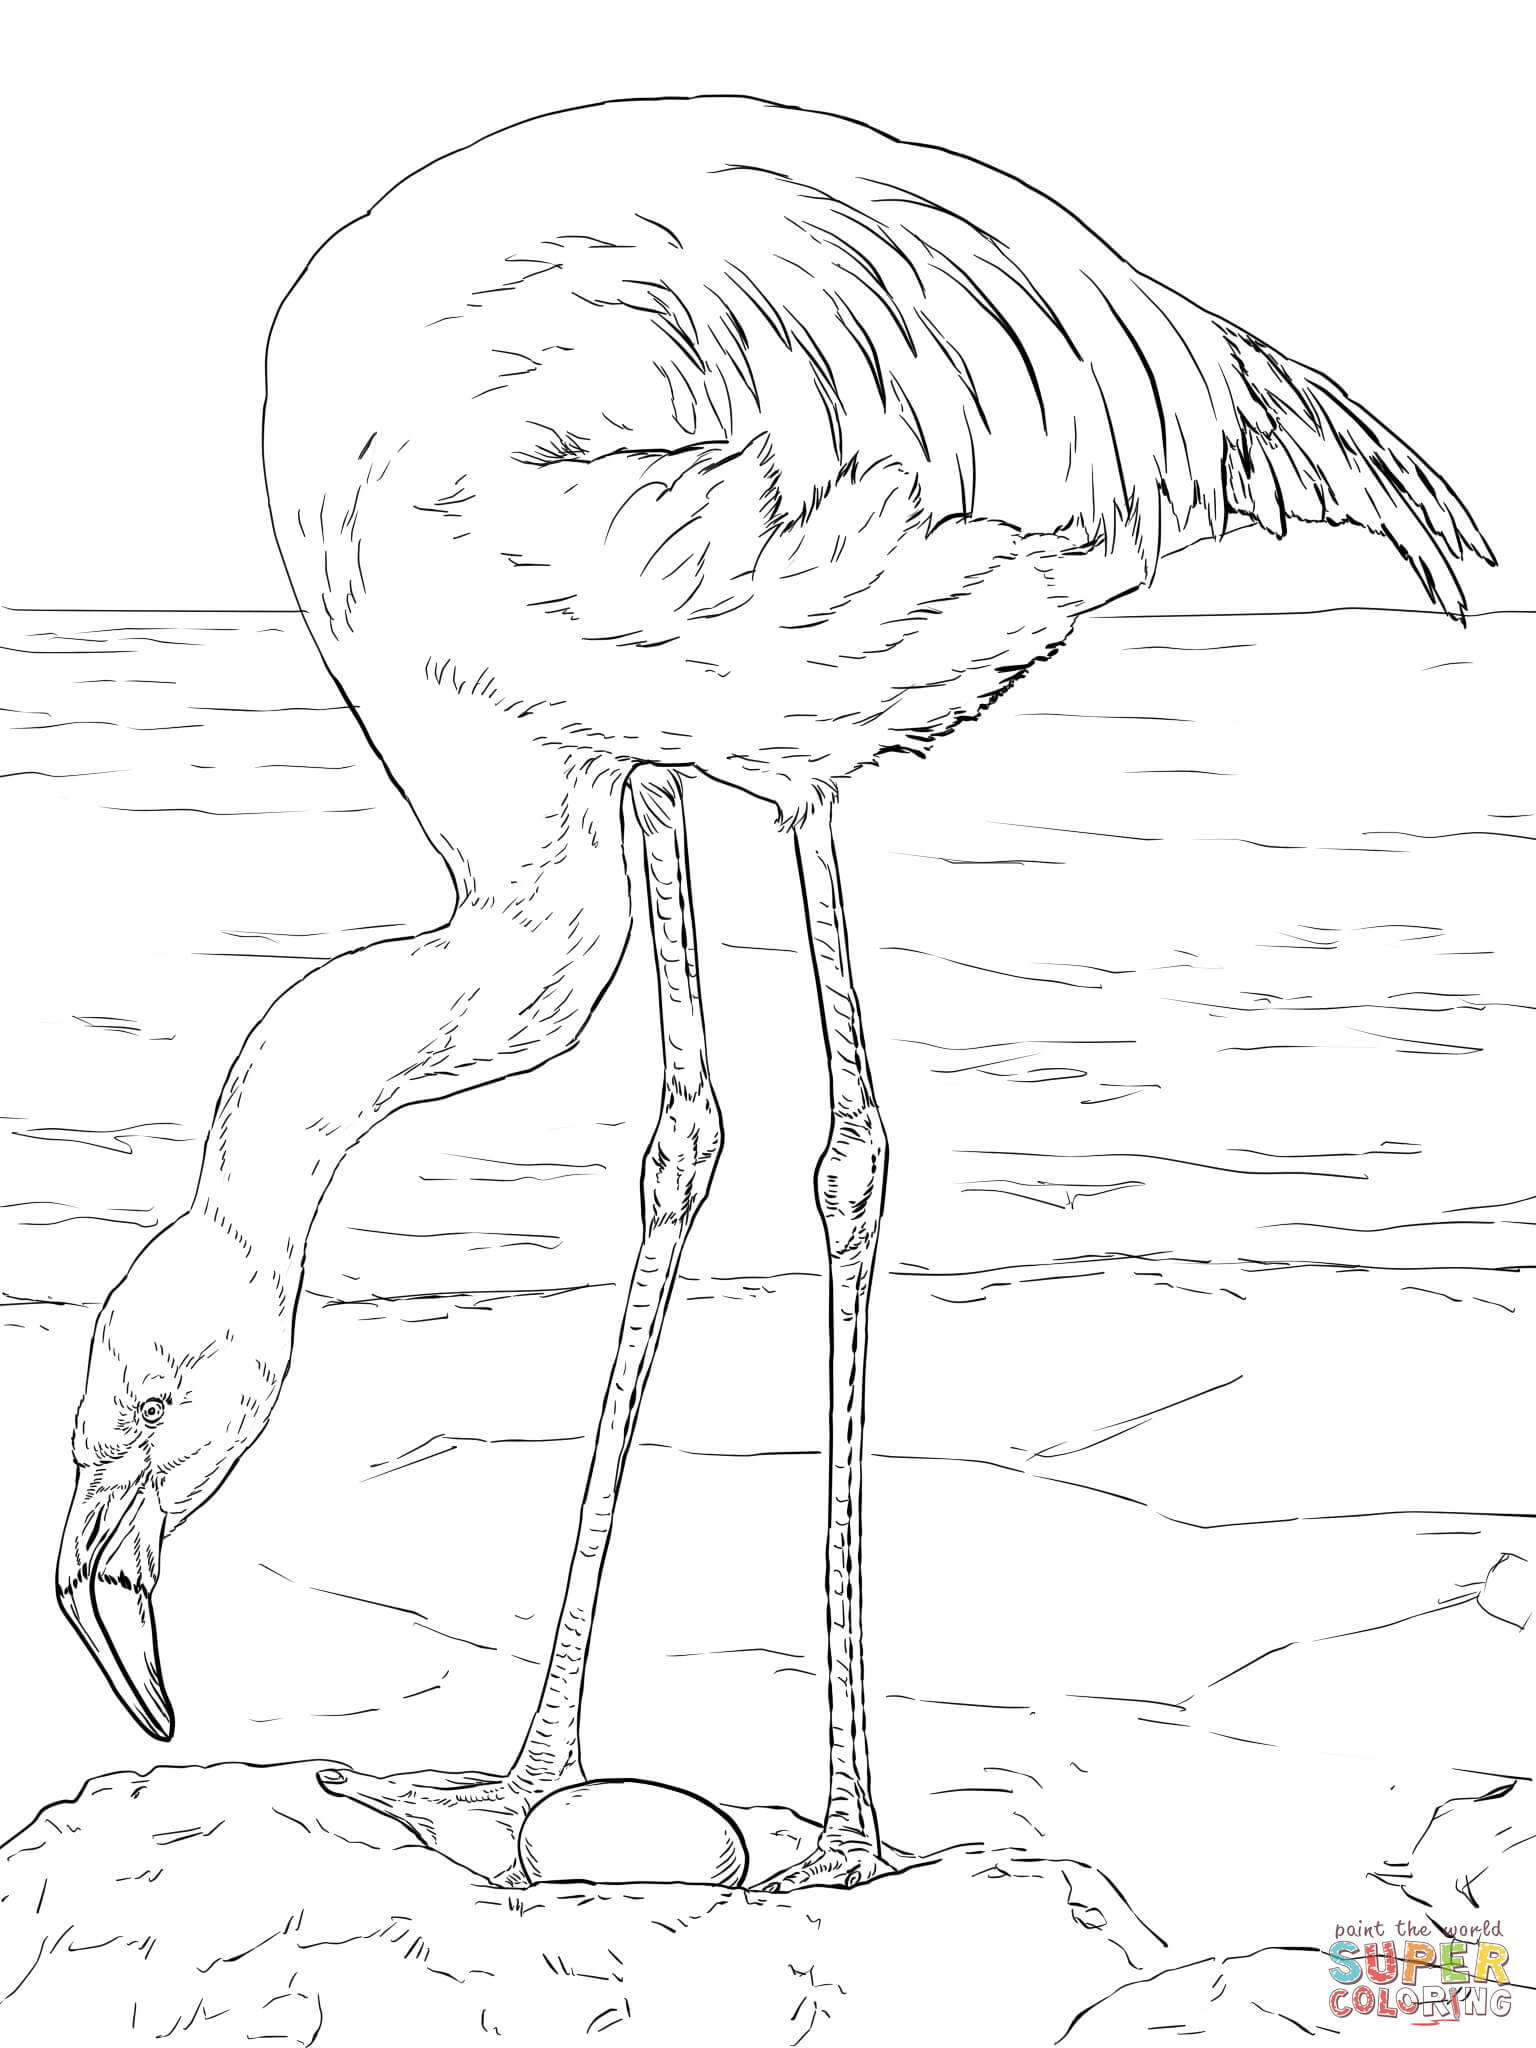 Chilean Flamingo coloring #9, Download drawings